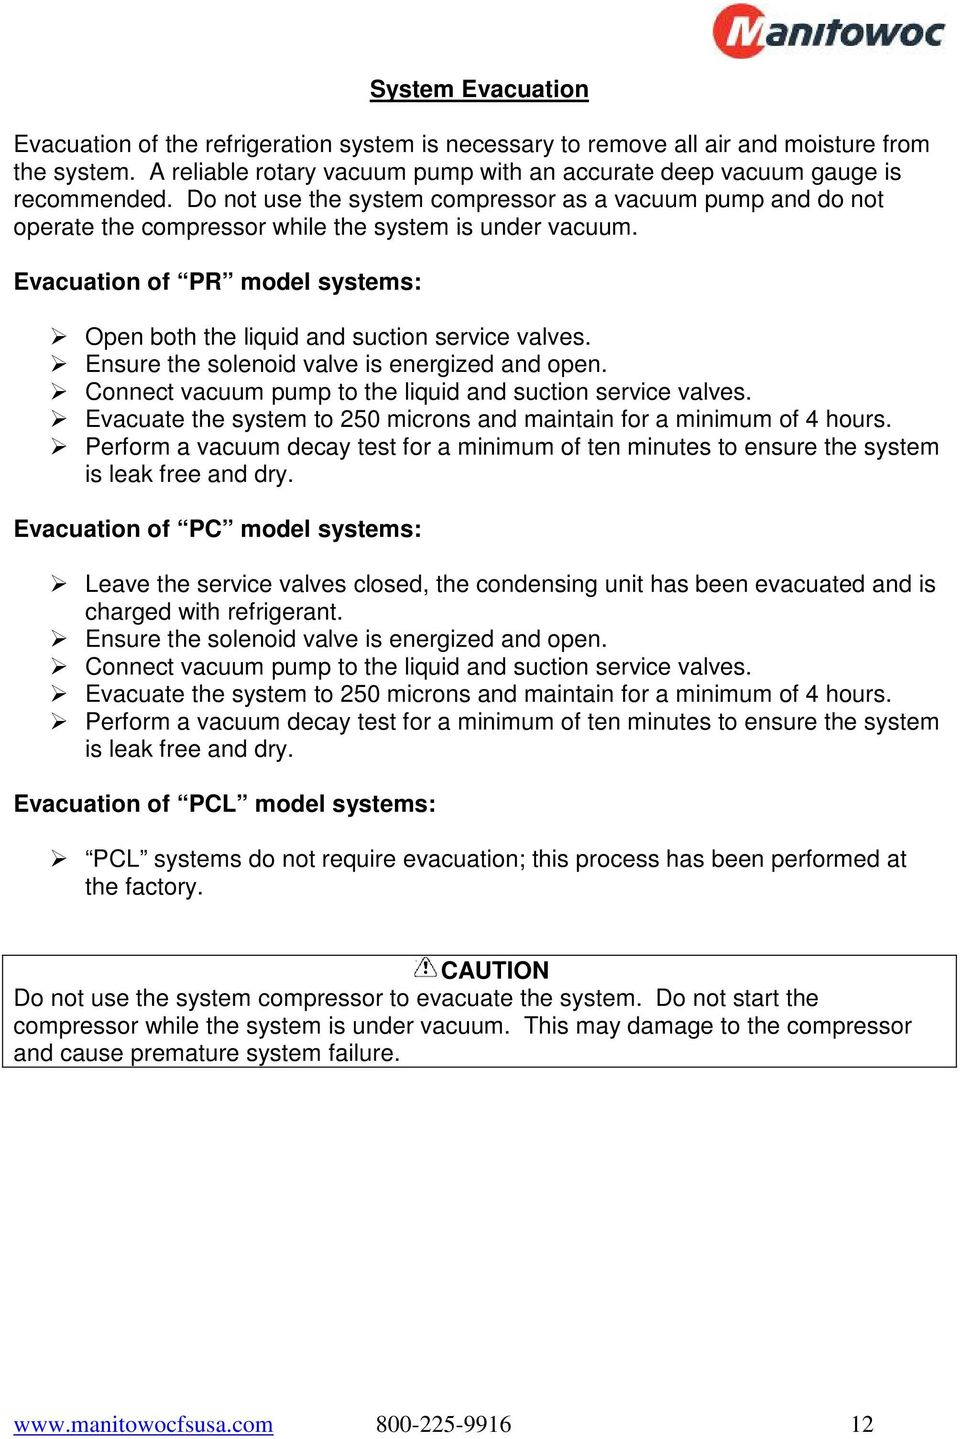 Refrigeration System Installation Operation Manual Pdf Condensing Unit And